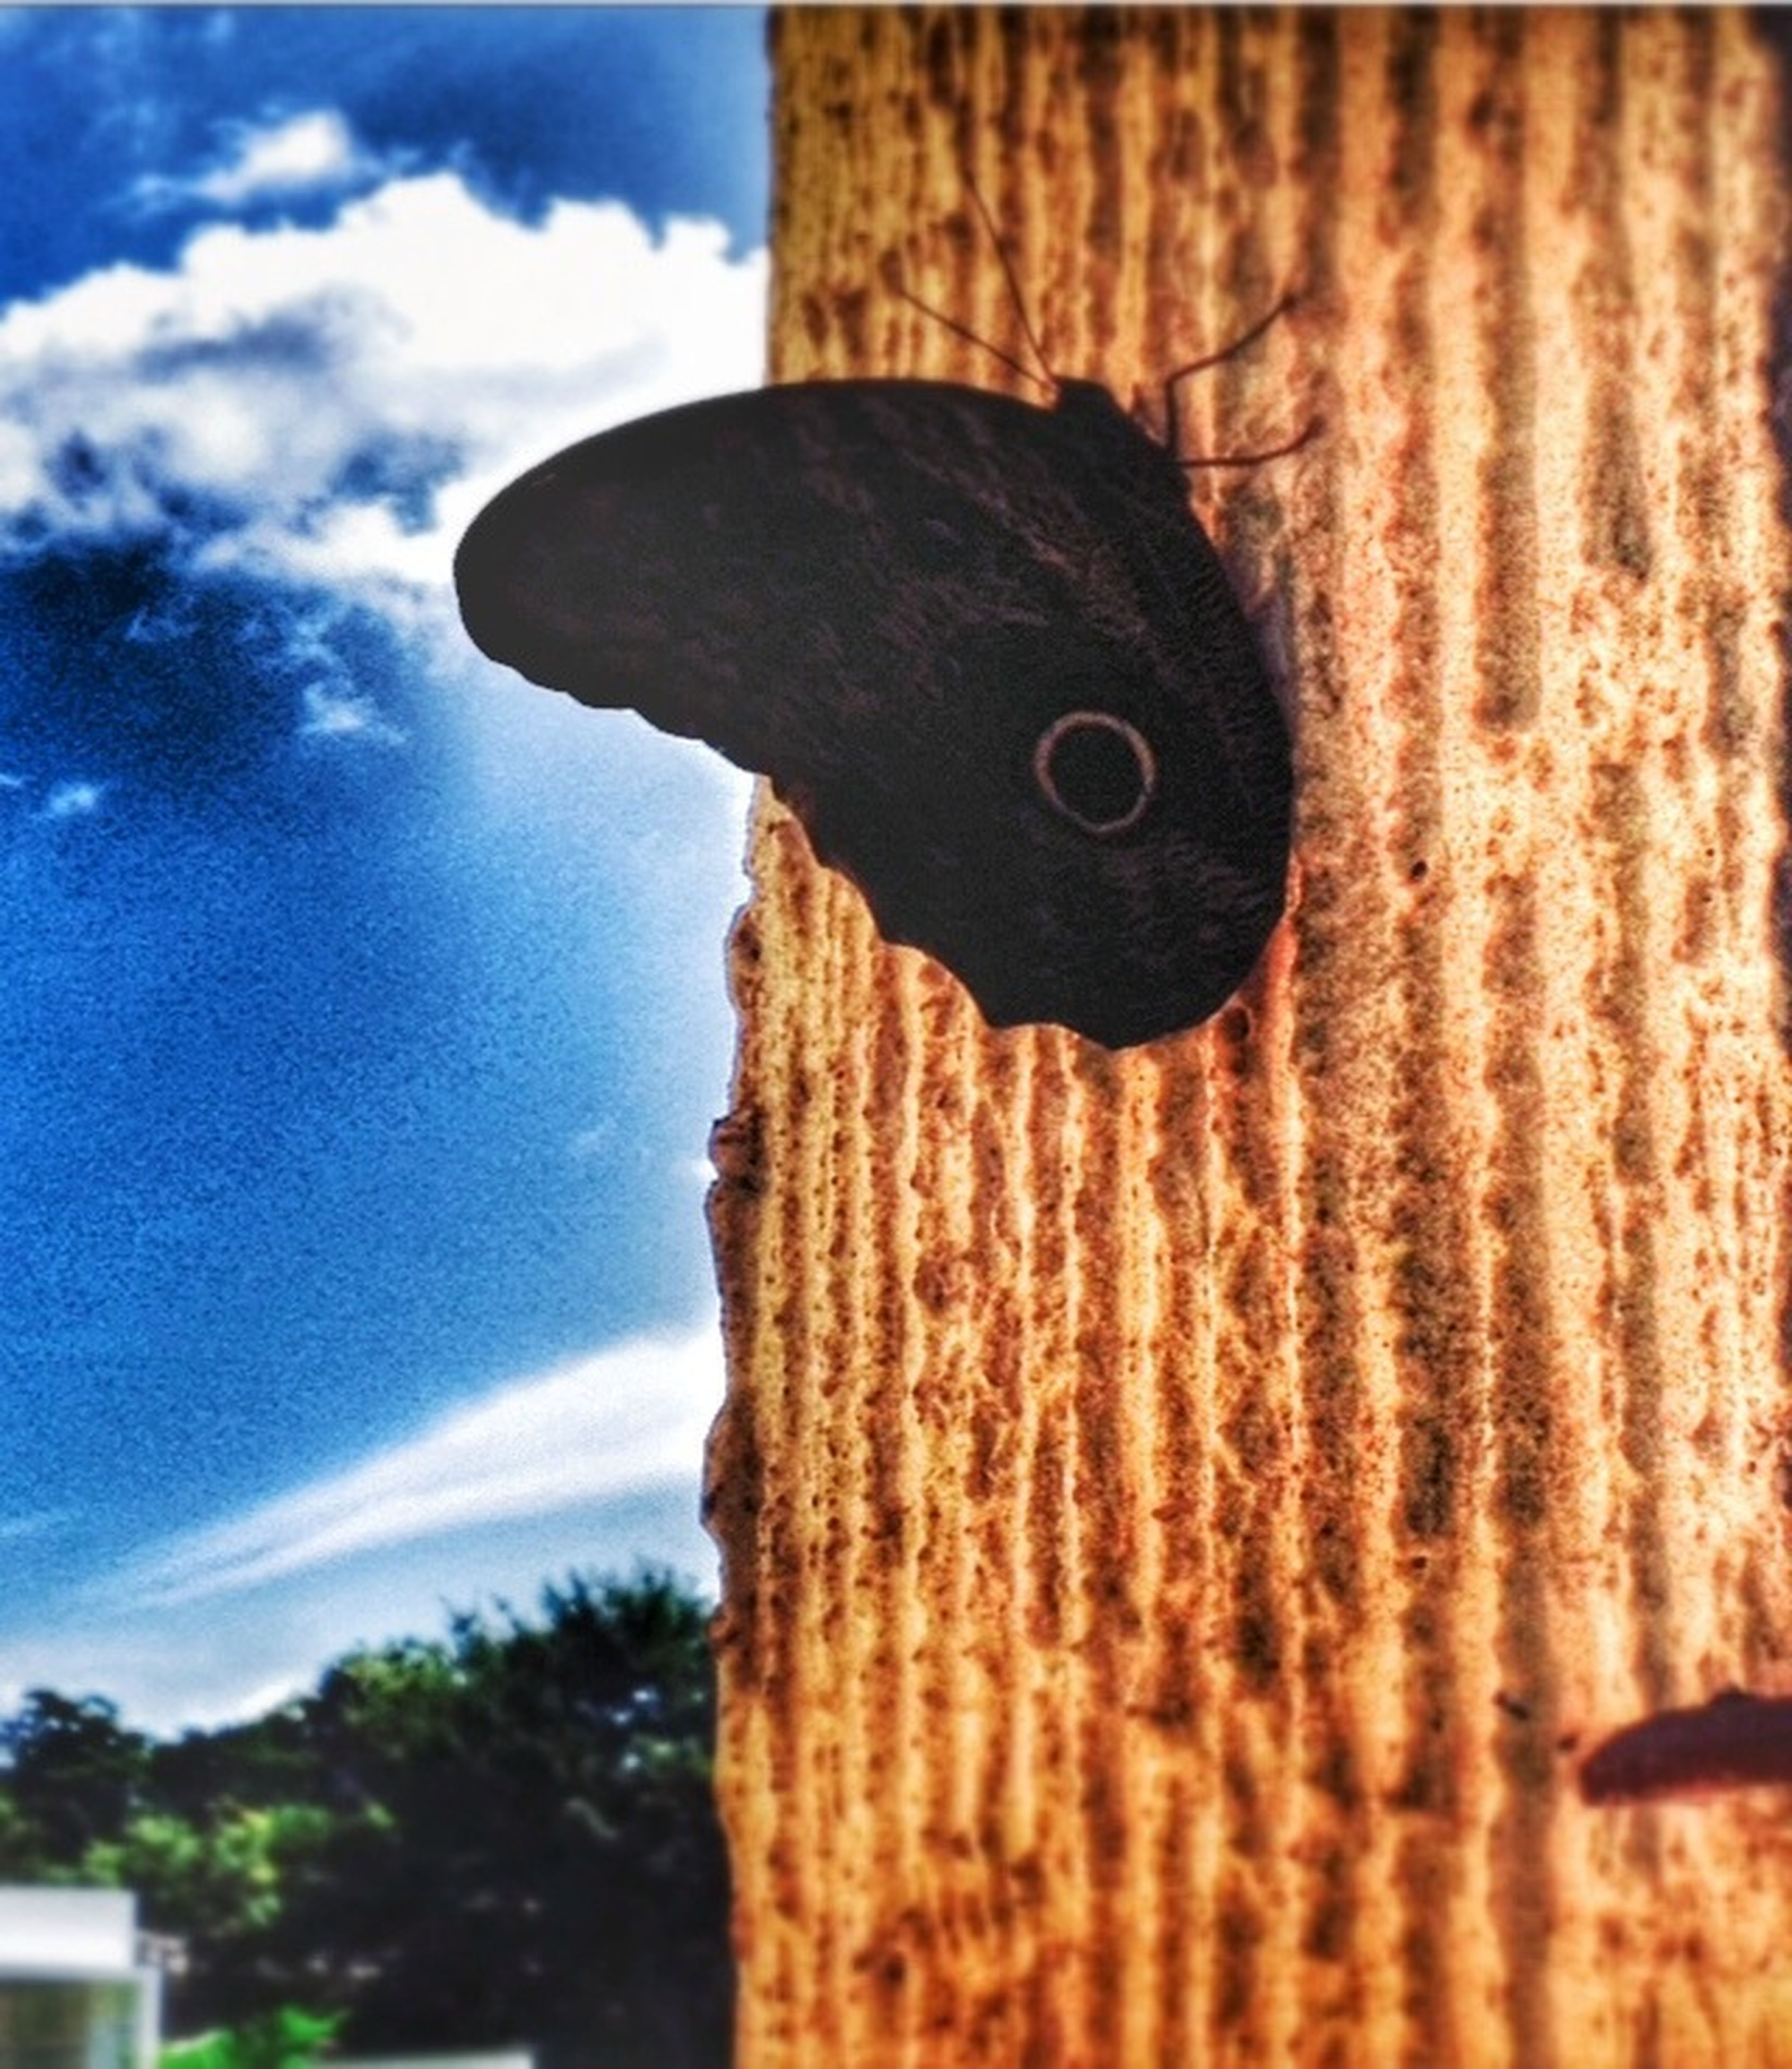 sky, focus on foreground, close-up, low angle view, wood - material, cloud - sky, cloud, blue, built structure, outdoors, building exterior, tree, one animal, day, pole, wooden, selective focus, architecture, nature, part of